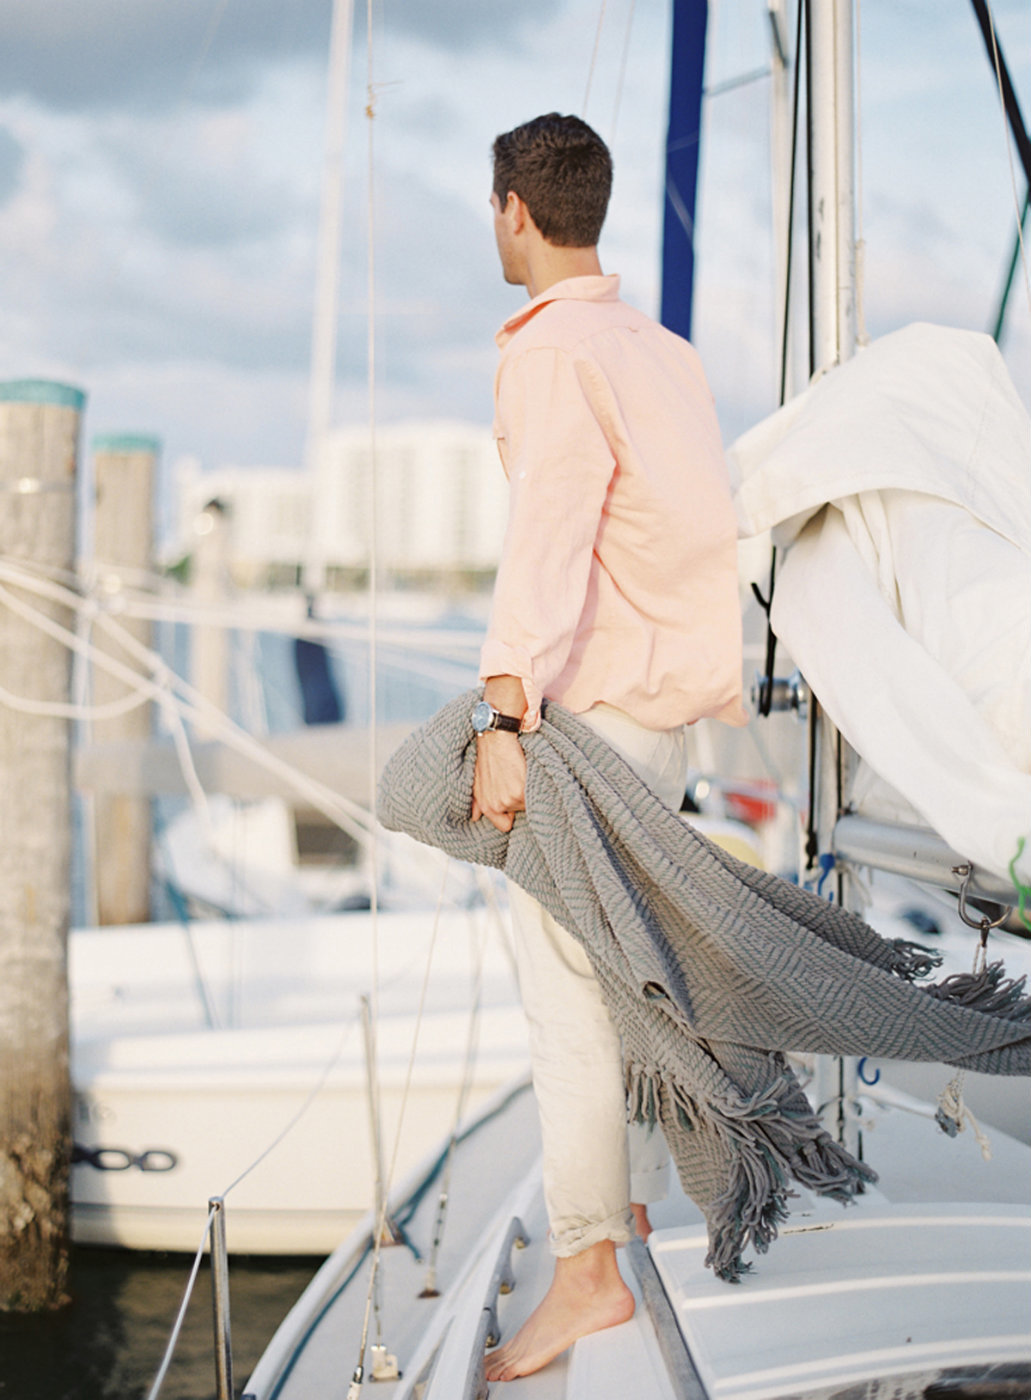 kayla_jon_vizcaya_sailboat_engagement_melanie_gabrielle_photography_61